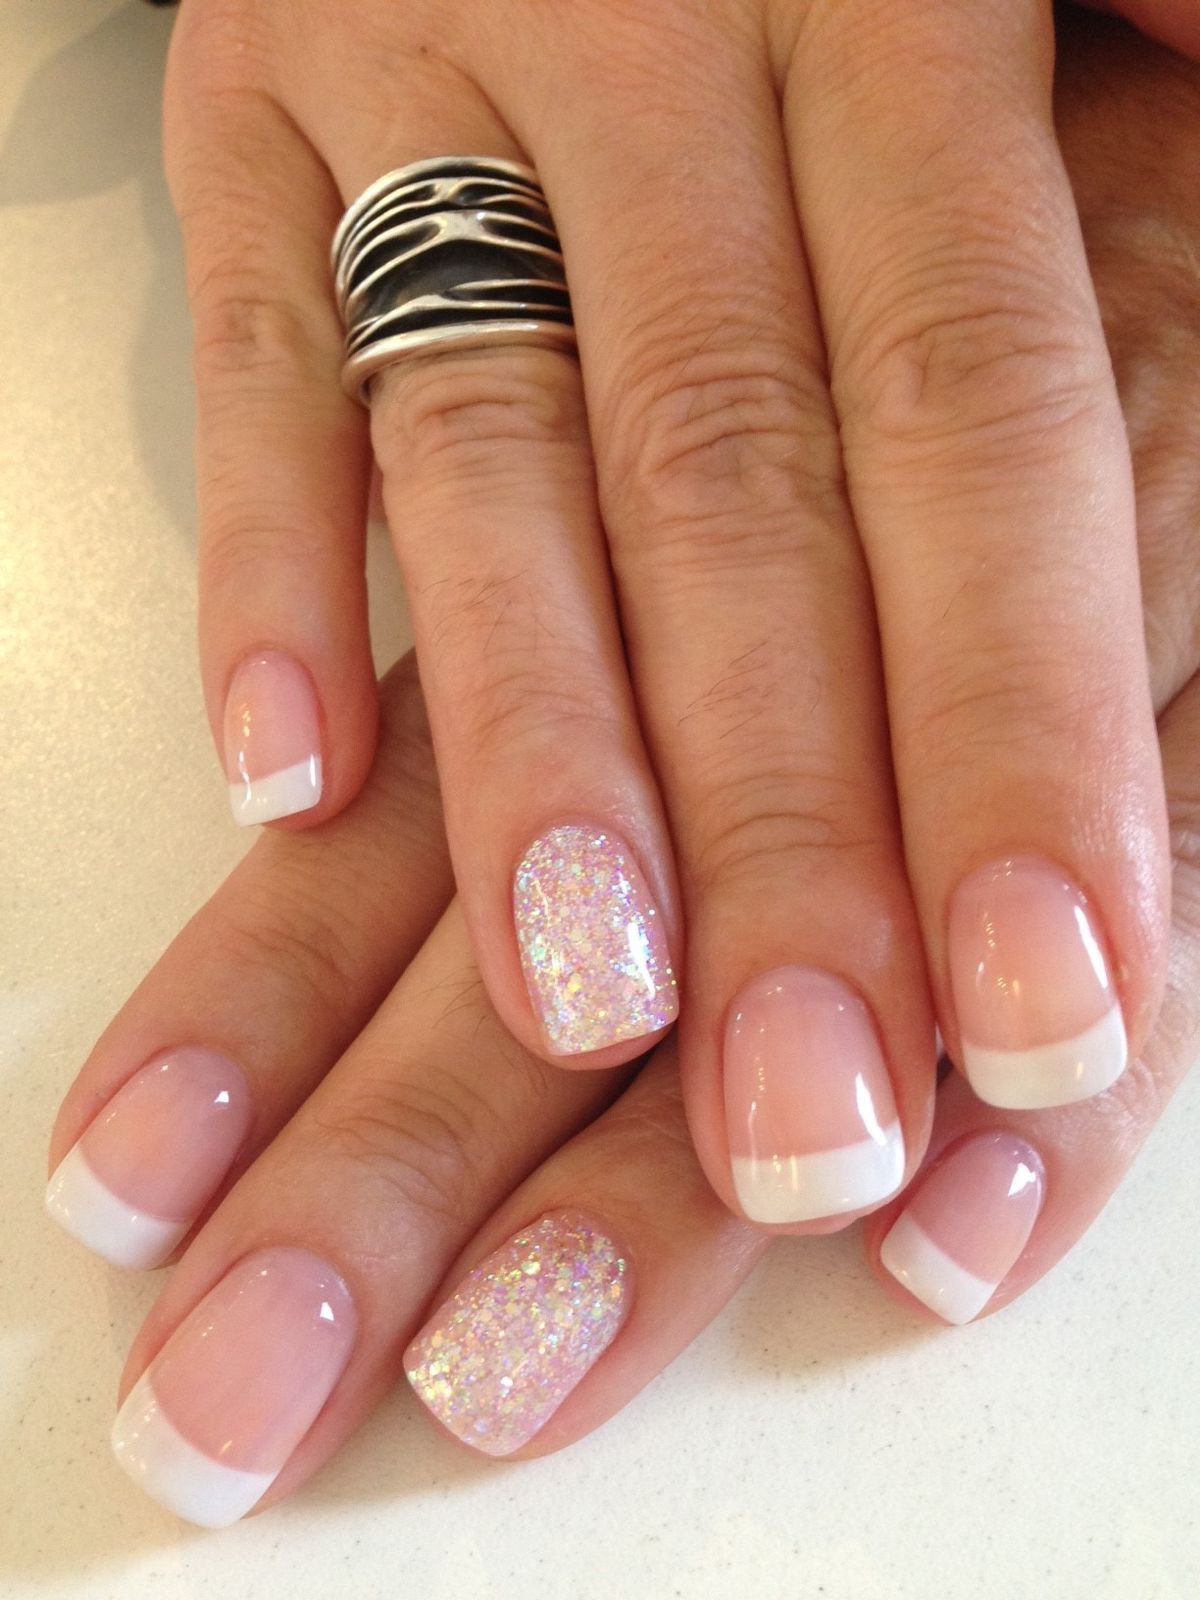 Pin by Oana stoin on Beauty | Pinterest | Manicure, Makeup and ...